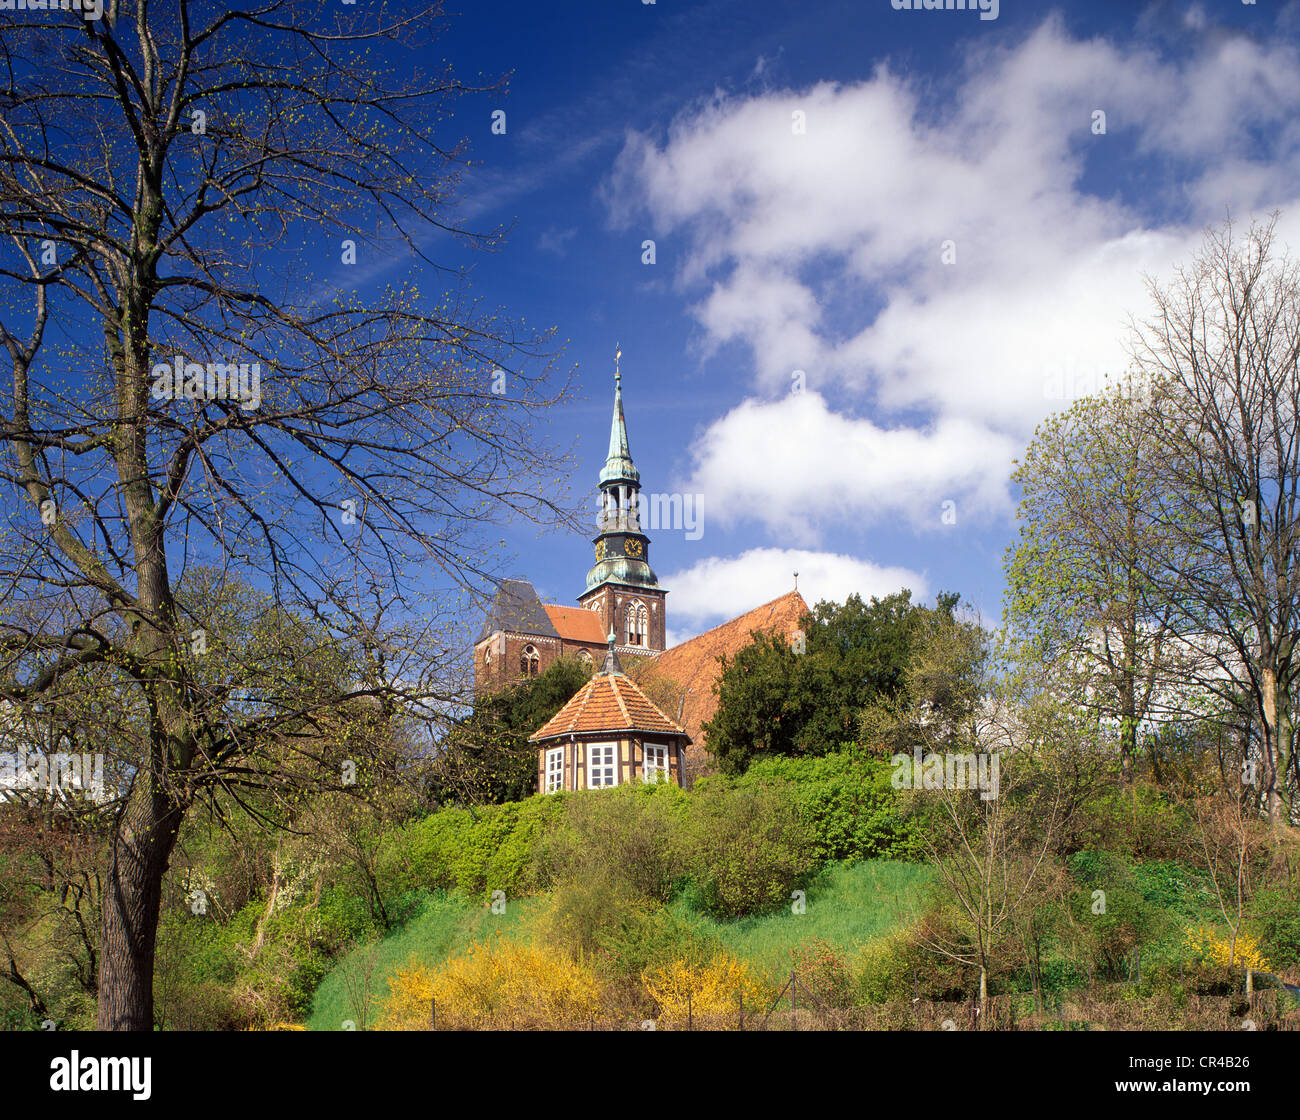 St. Stephen's Church, Tangermuende, Saxony-Anhalt, Germany, Europe Stock Photo